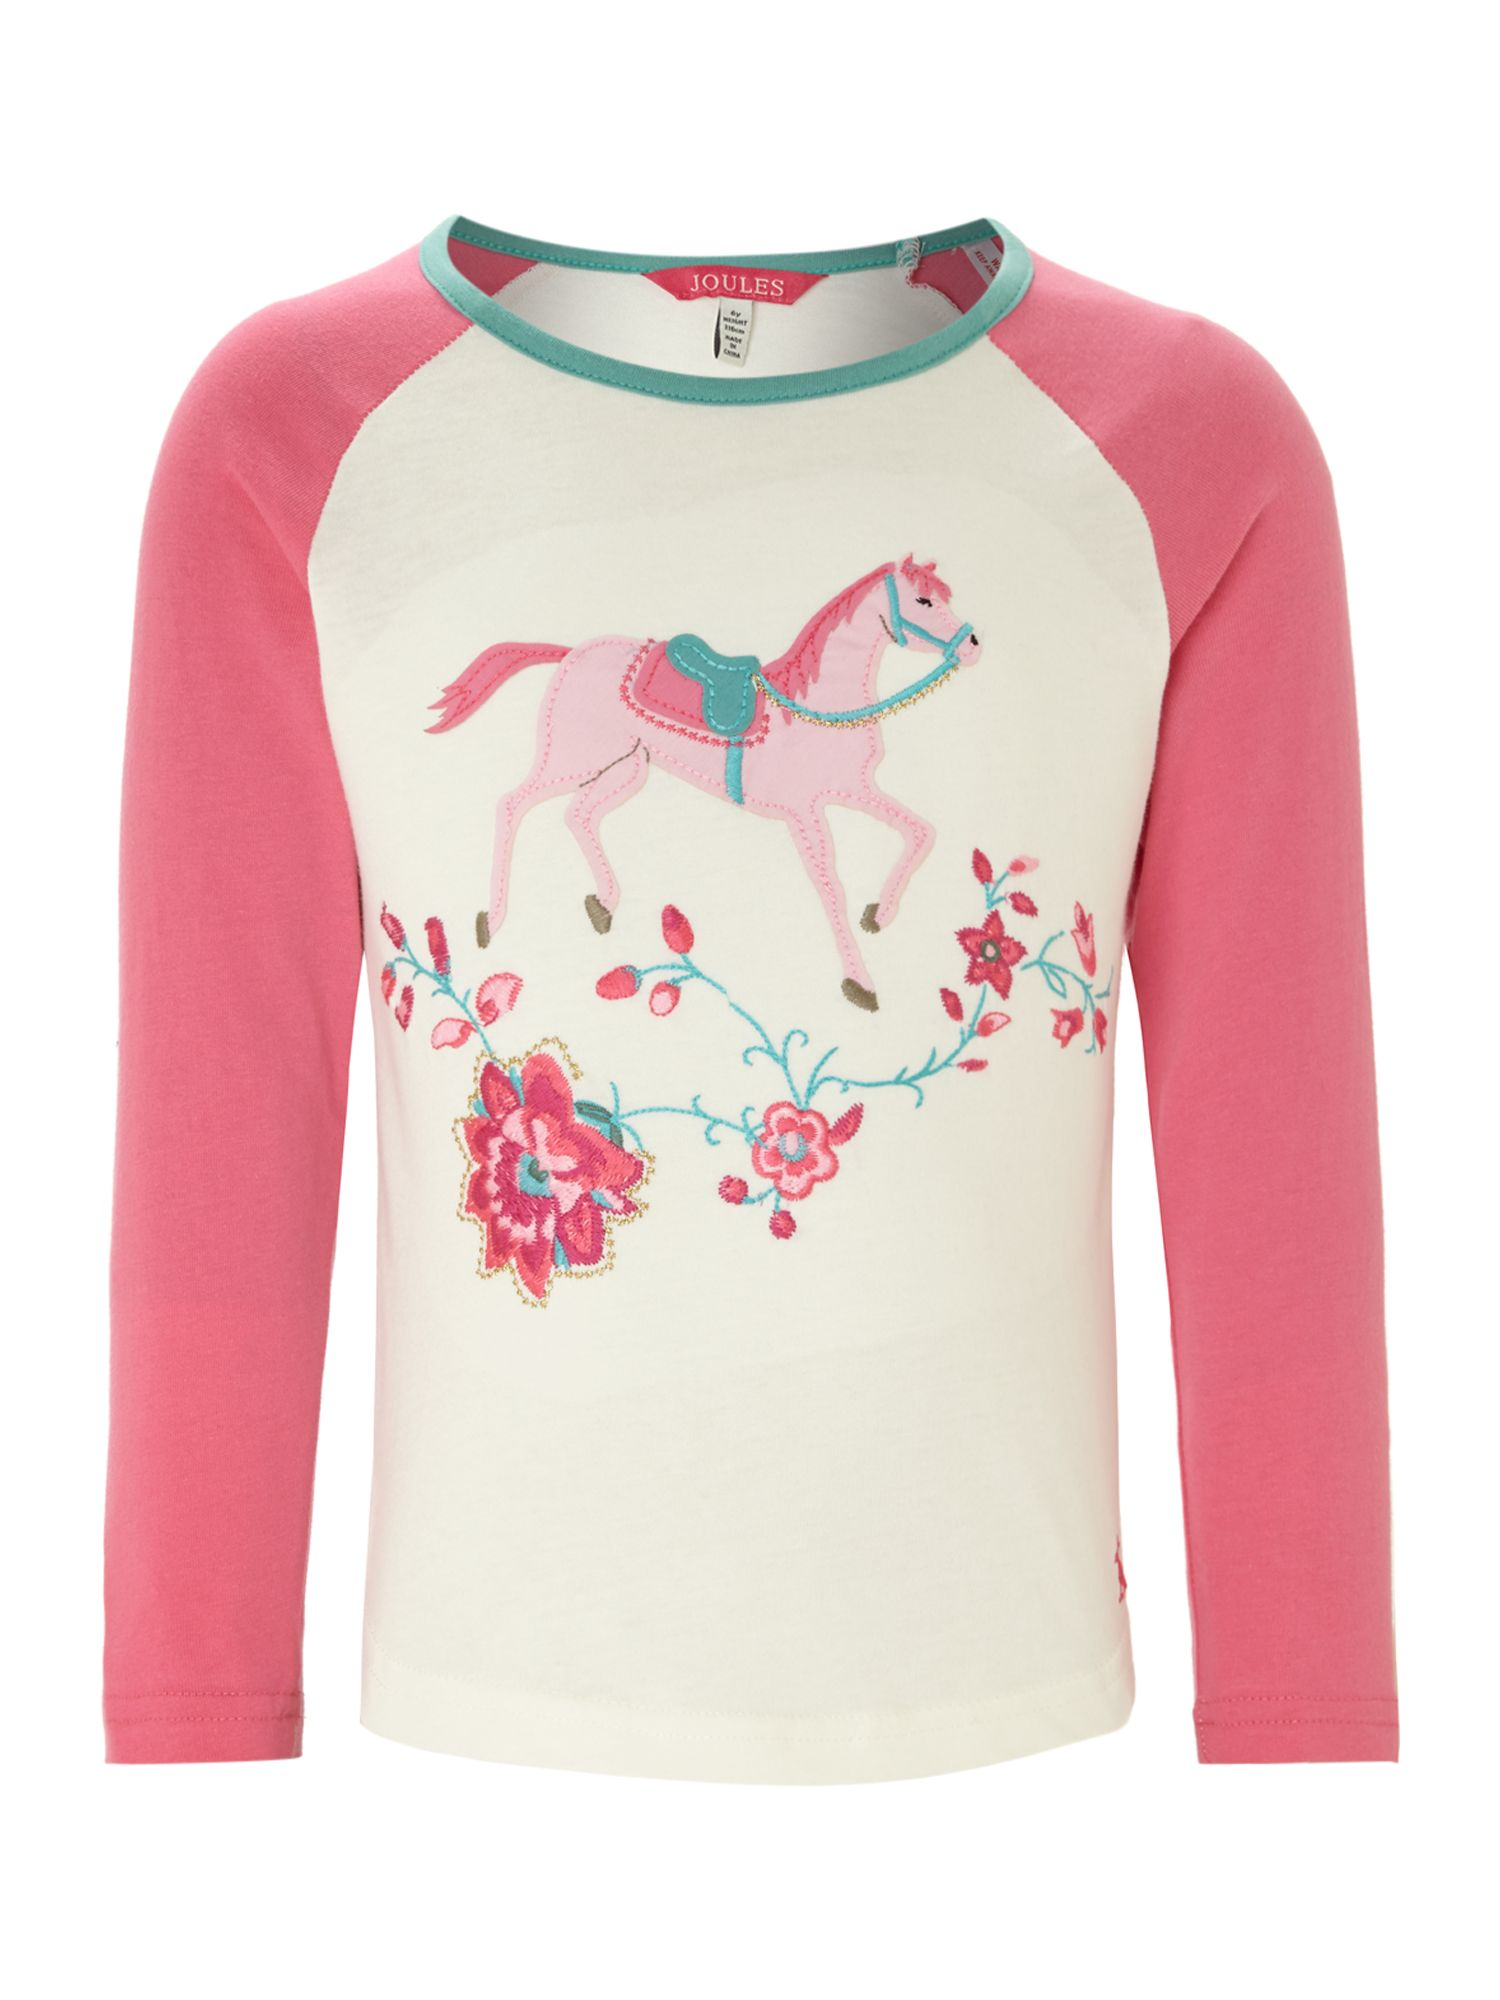 Girls pony applique raglan t-shirt